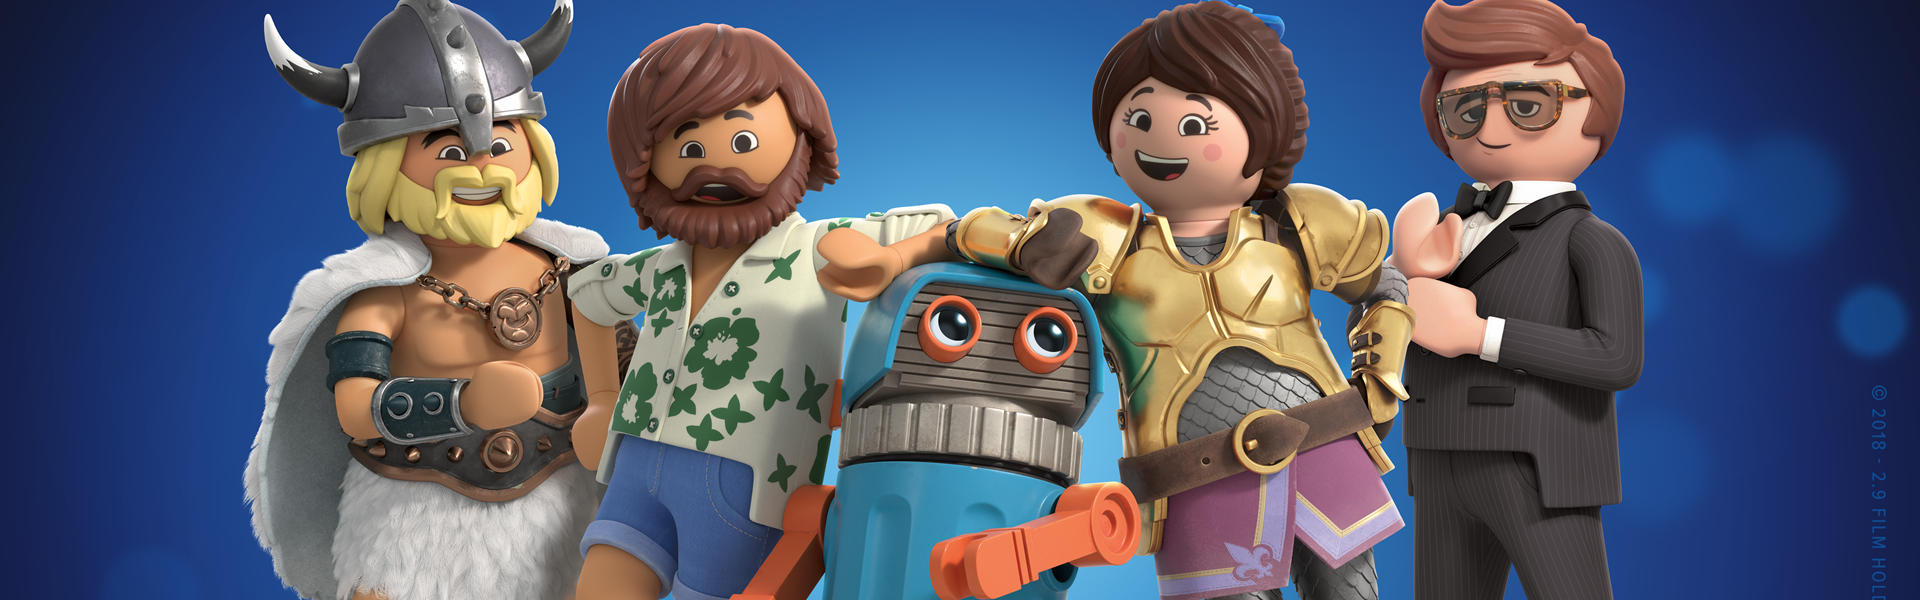 FILM: Playmobil - The Movie